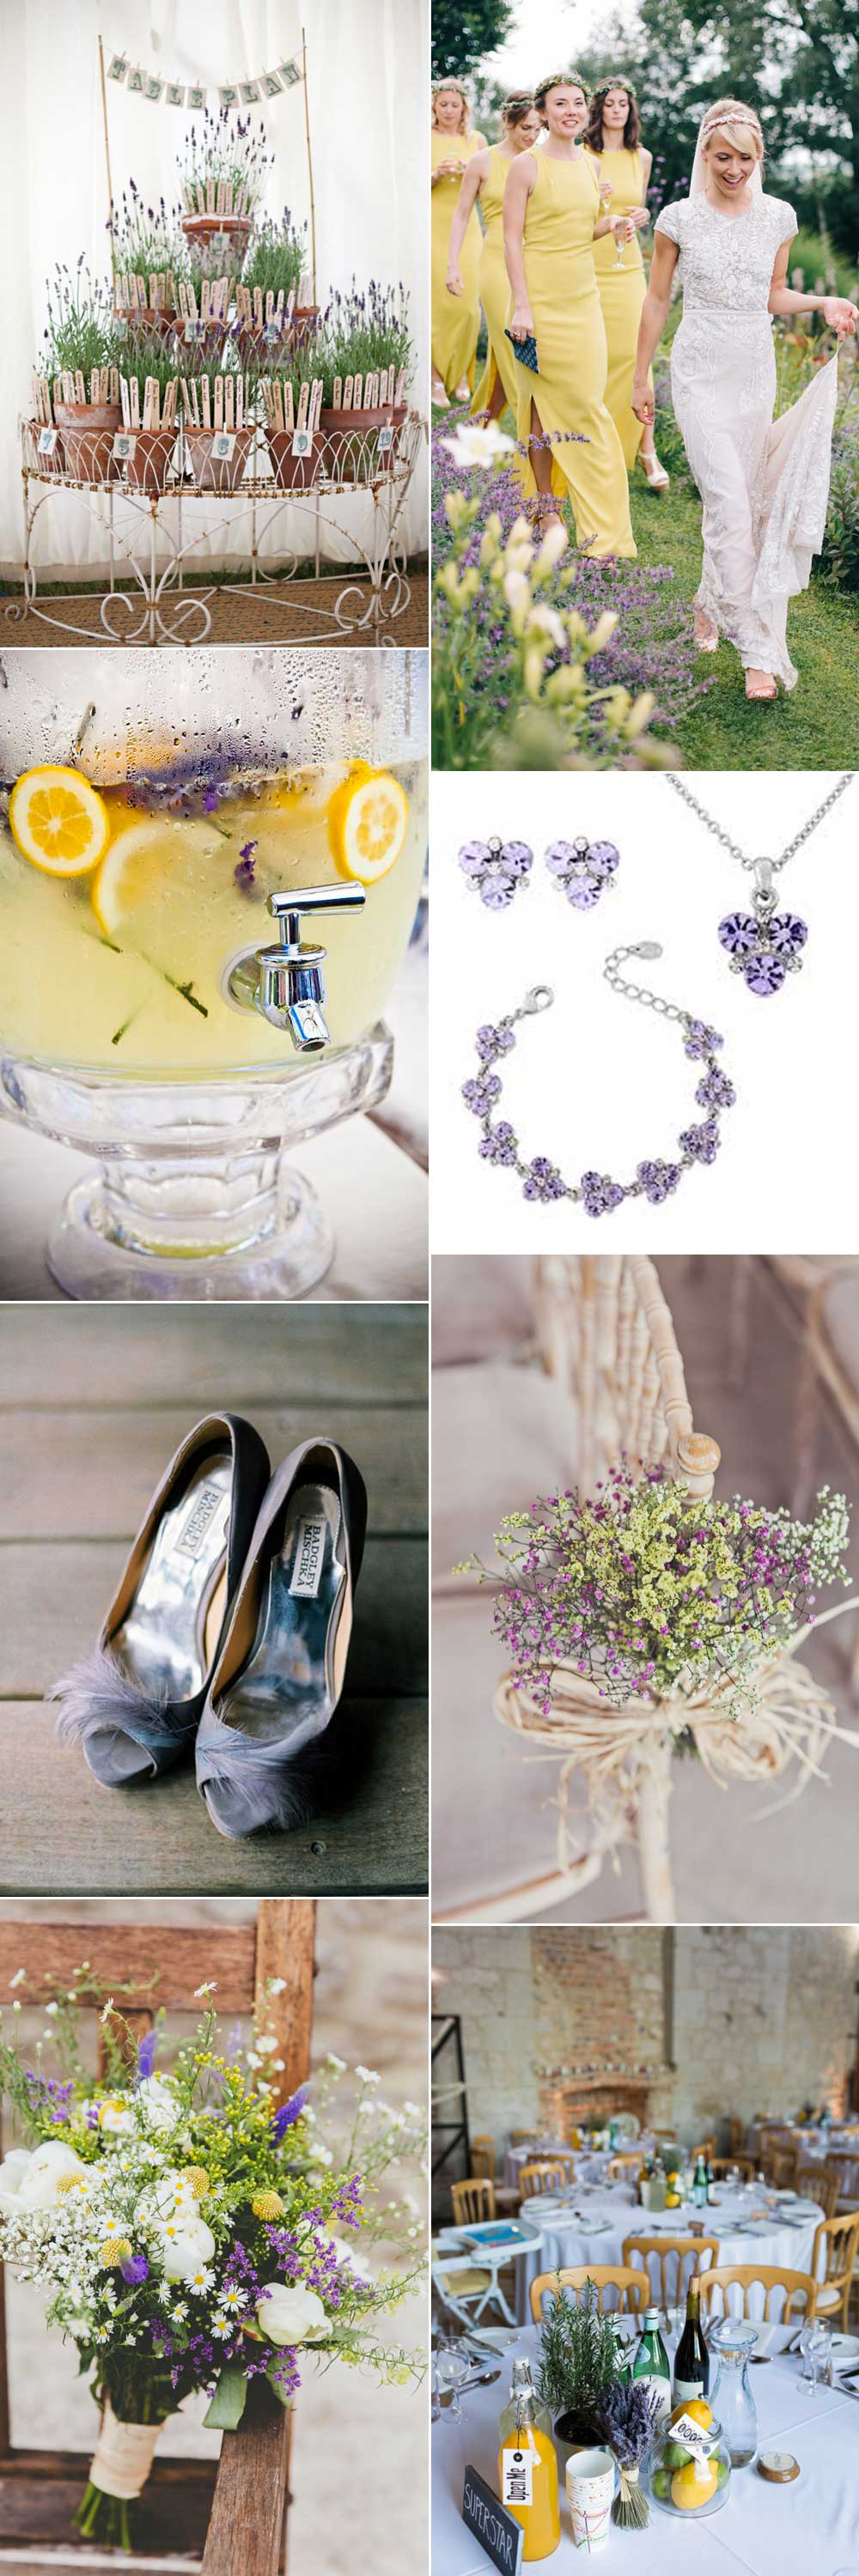 Lemon and lavender wedding inspirations